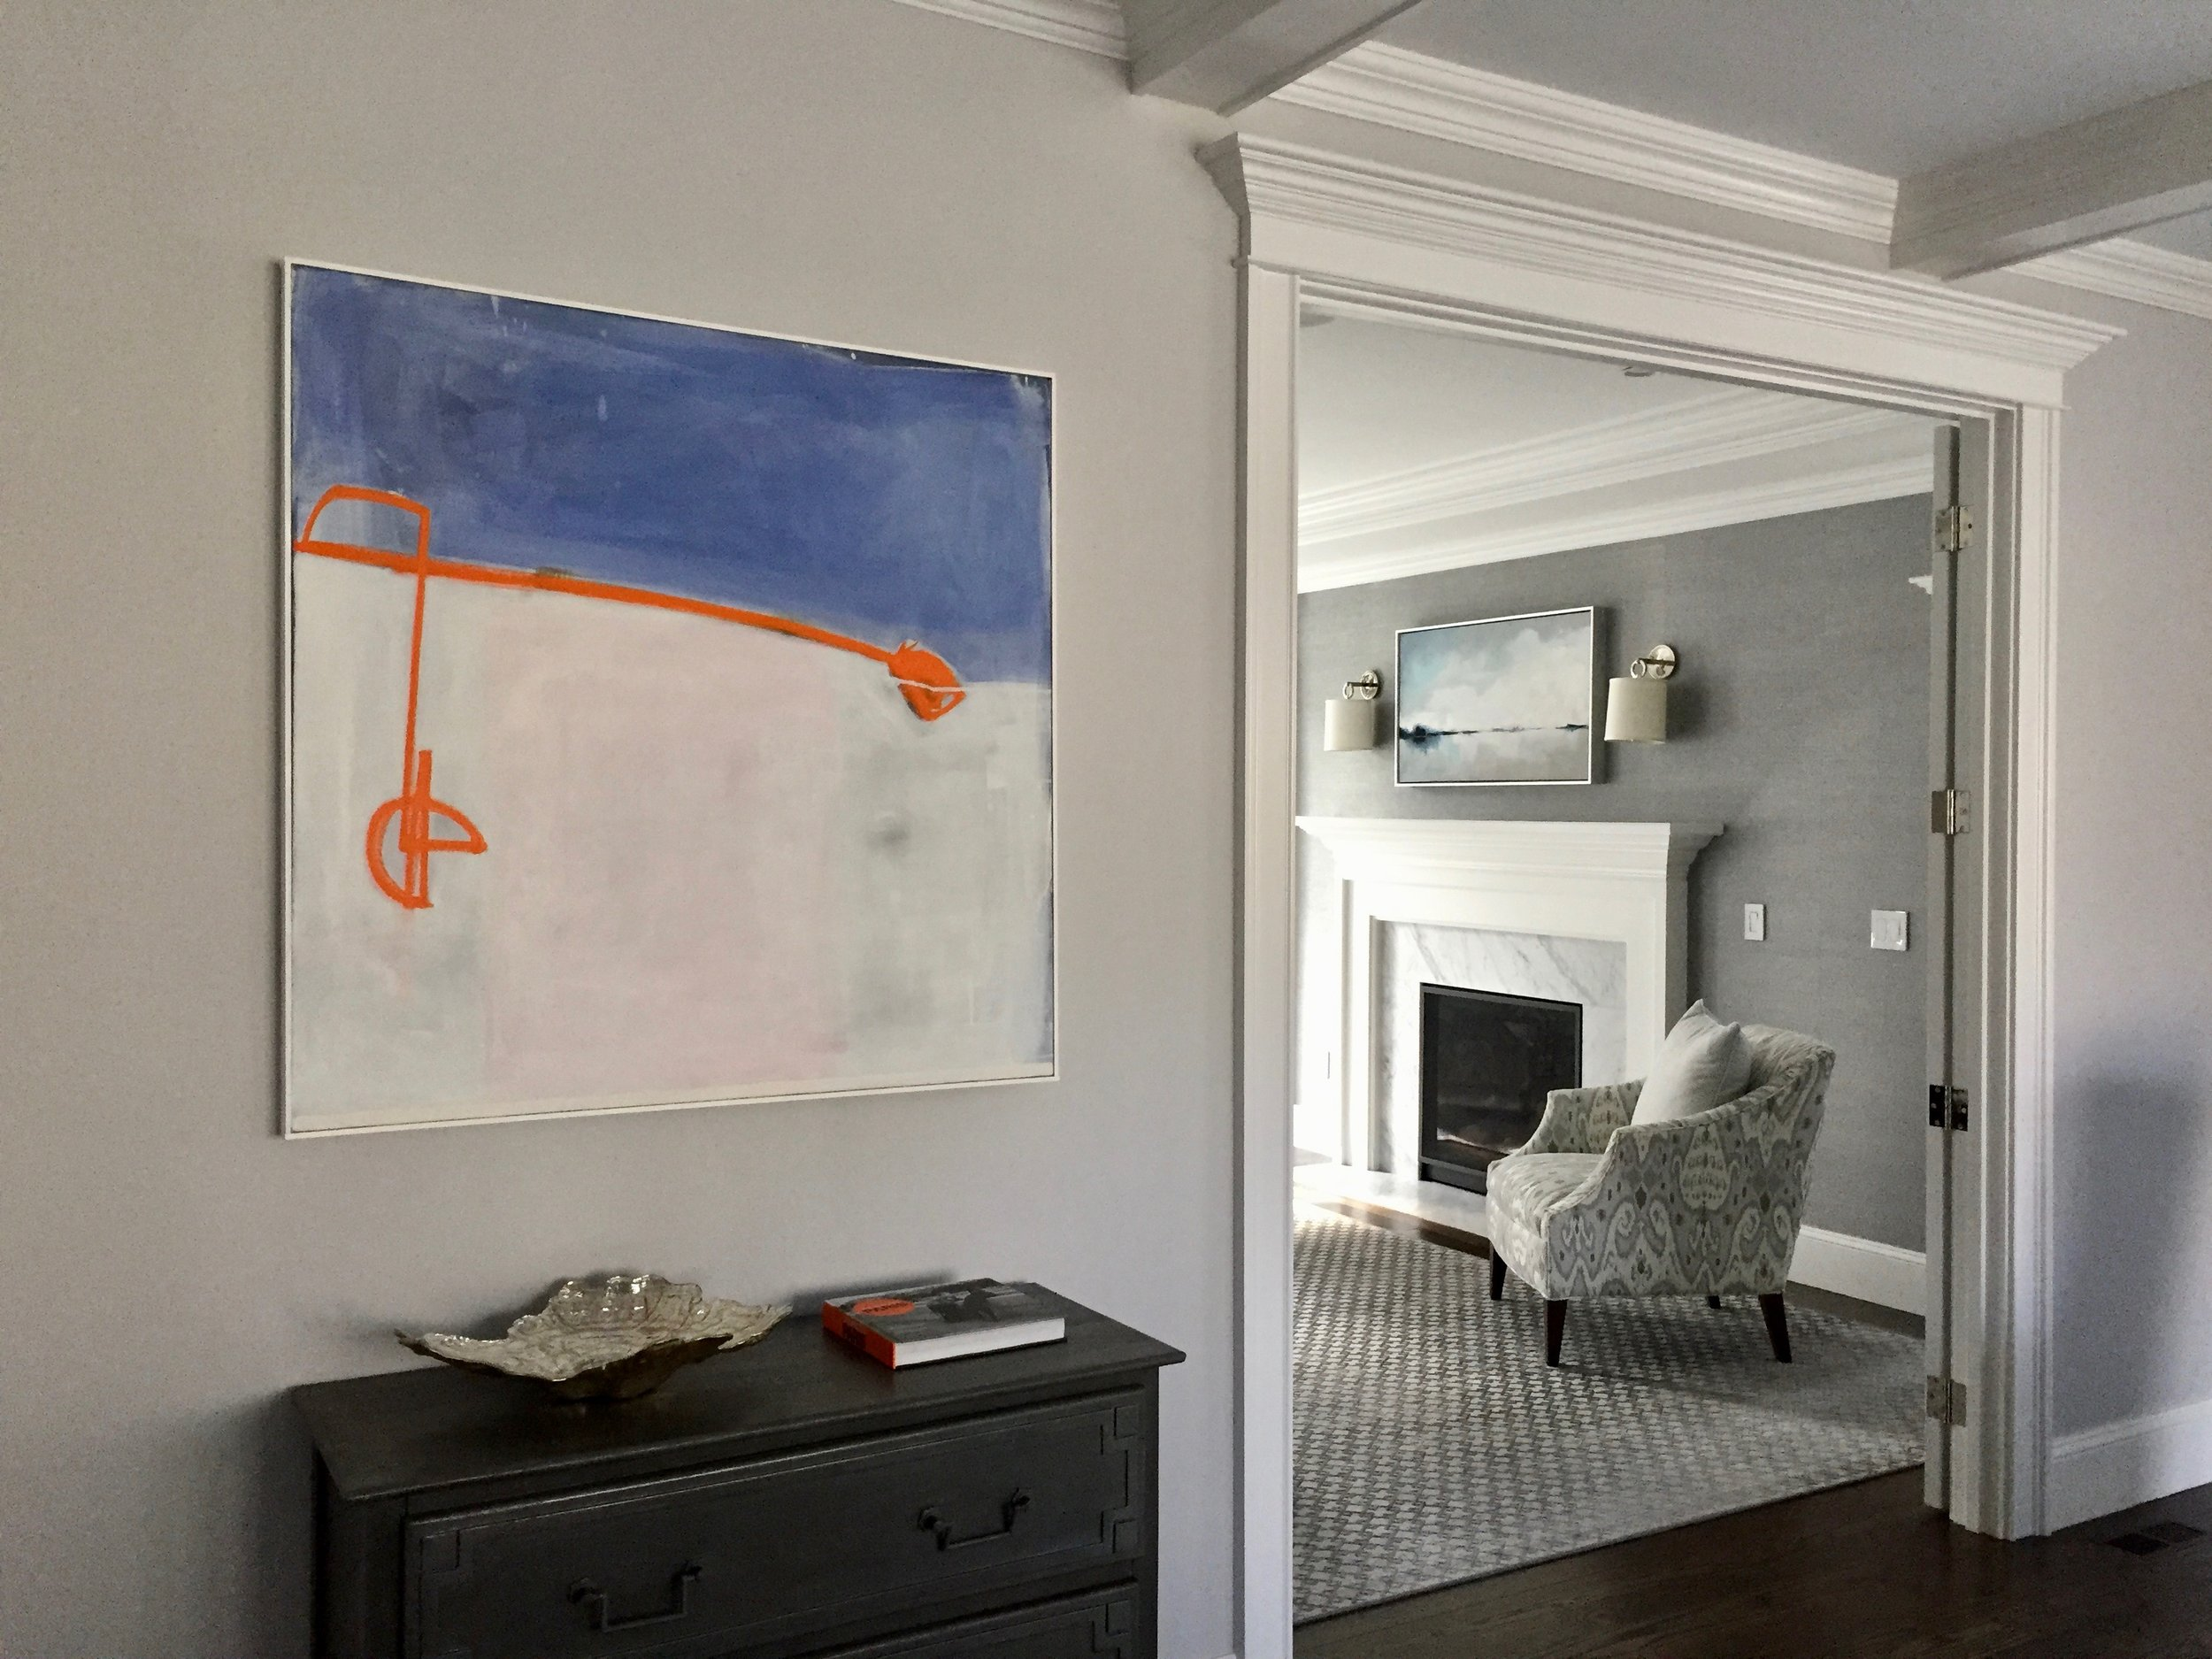 Ziggy, installed in home by Libby Sylvia Artstyle